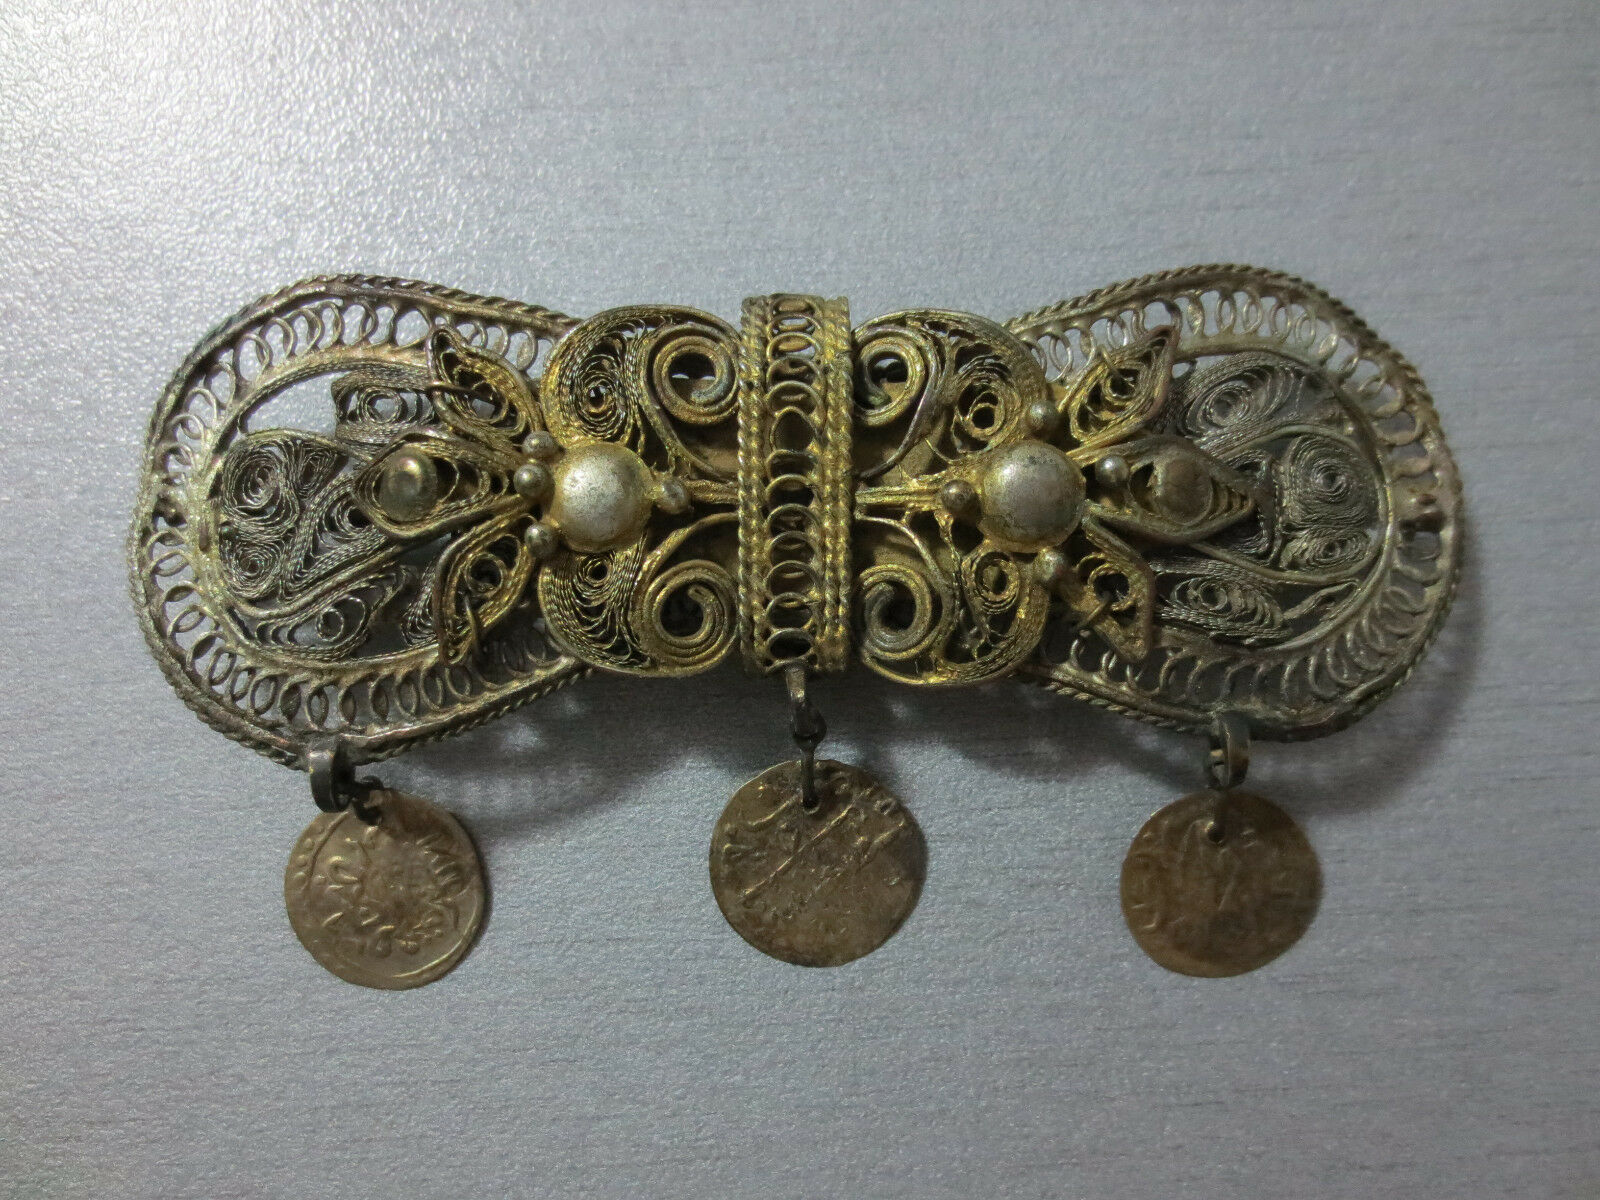 Gorgeous OTTOMAN SILVER FILIGREE + SILVER COINS + GILDED ORNAMENT Pin Brooch